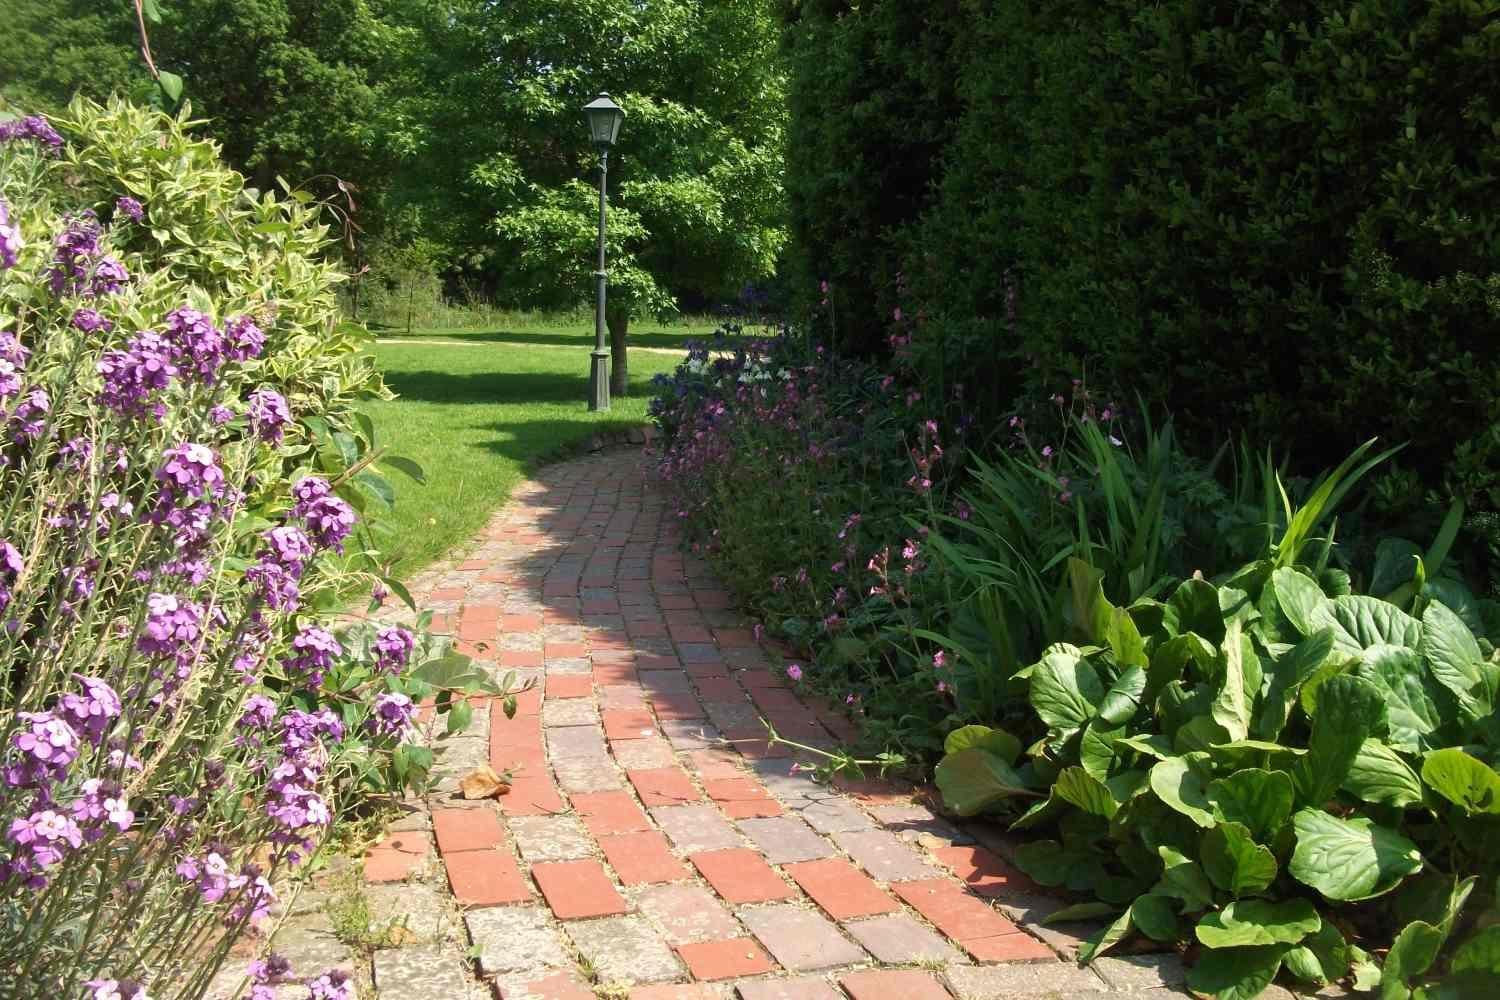 Pathway in the grounds